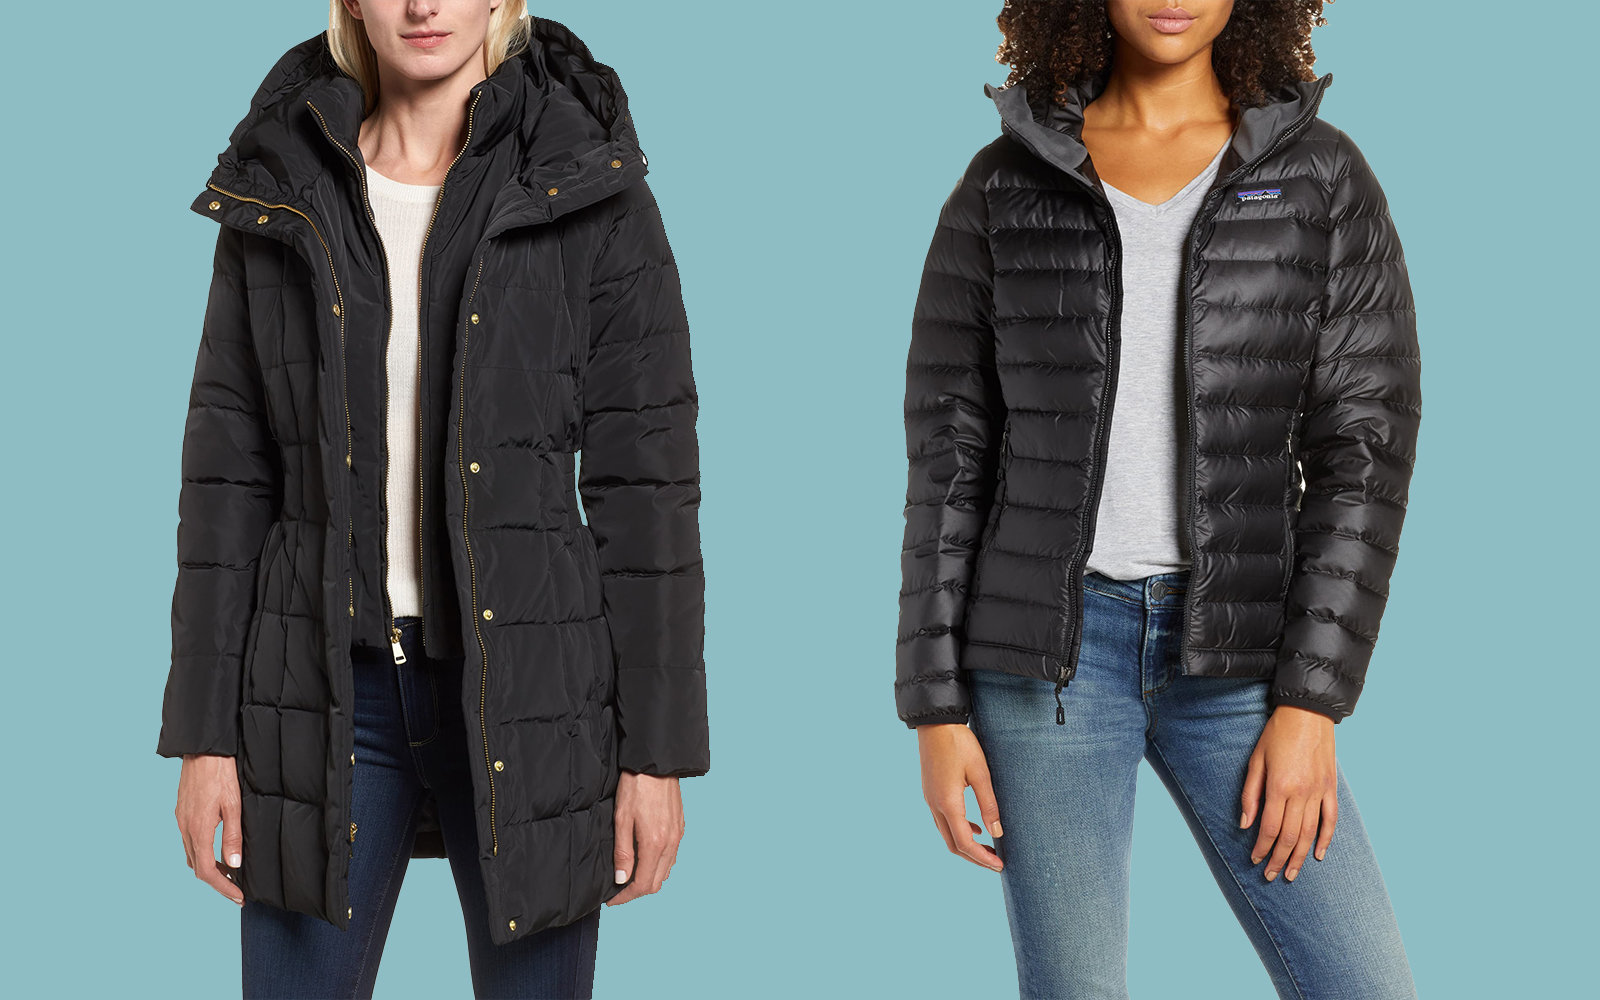 The 14 Best Winter Jackets and Coats, According to Customers